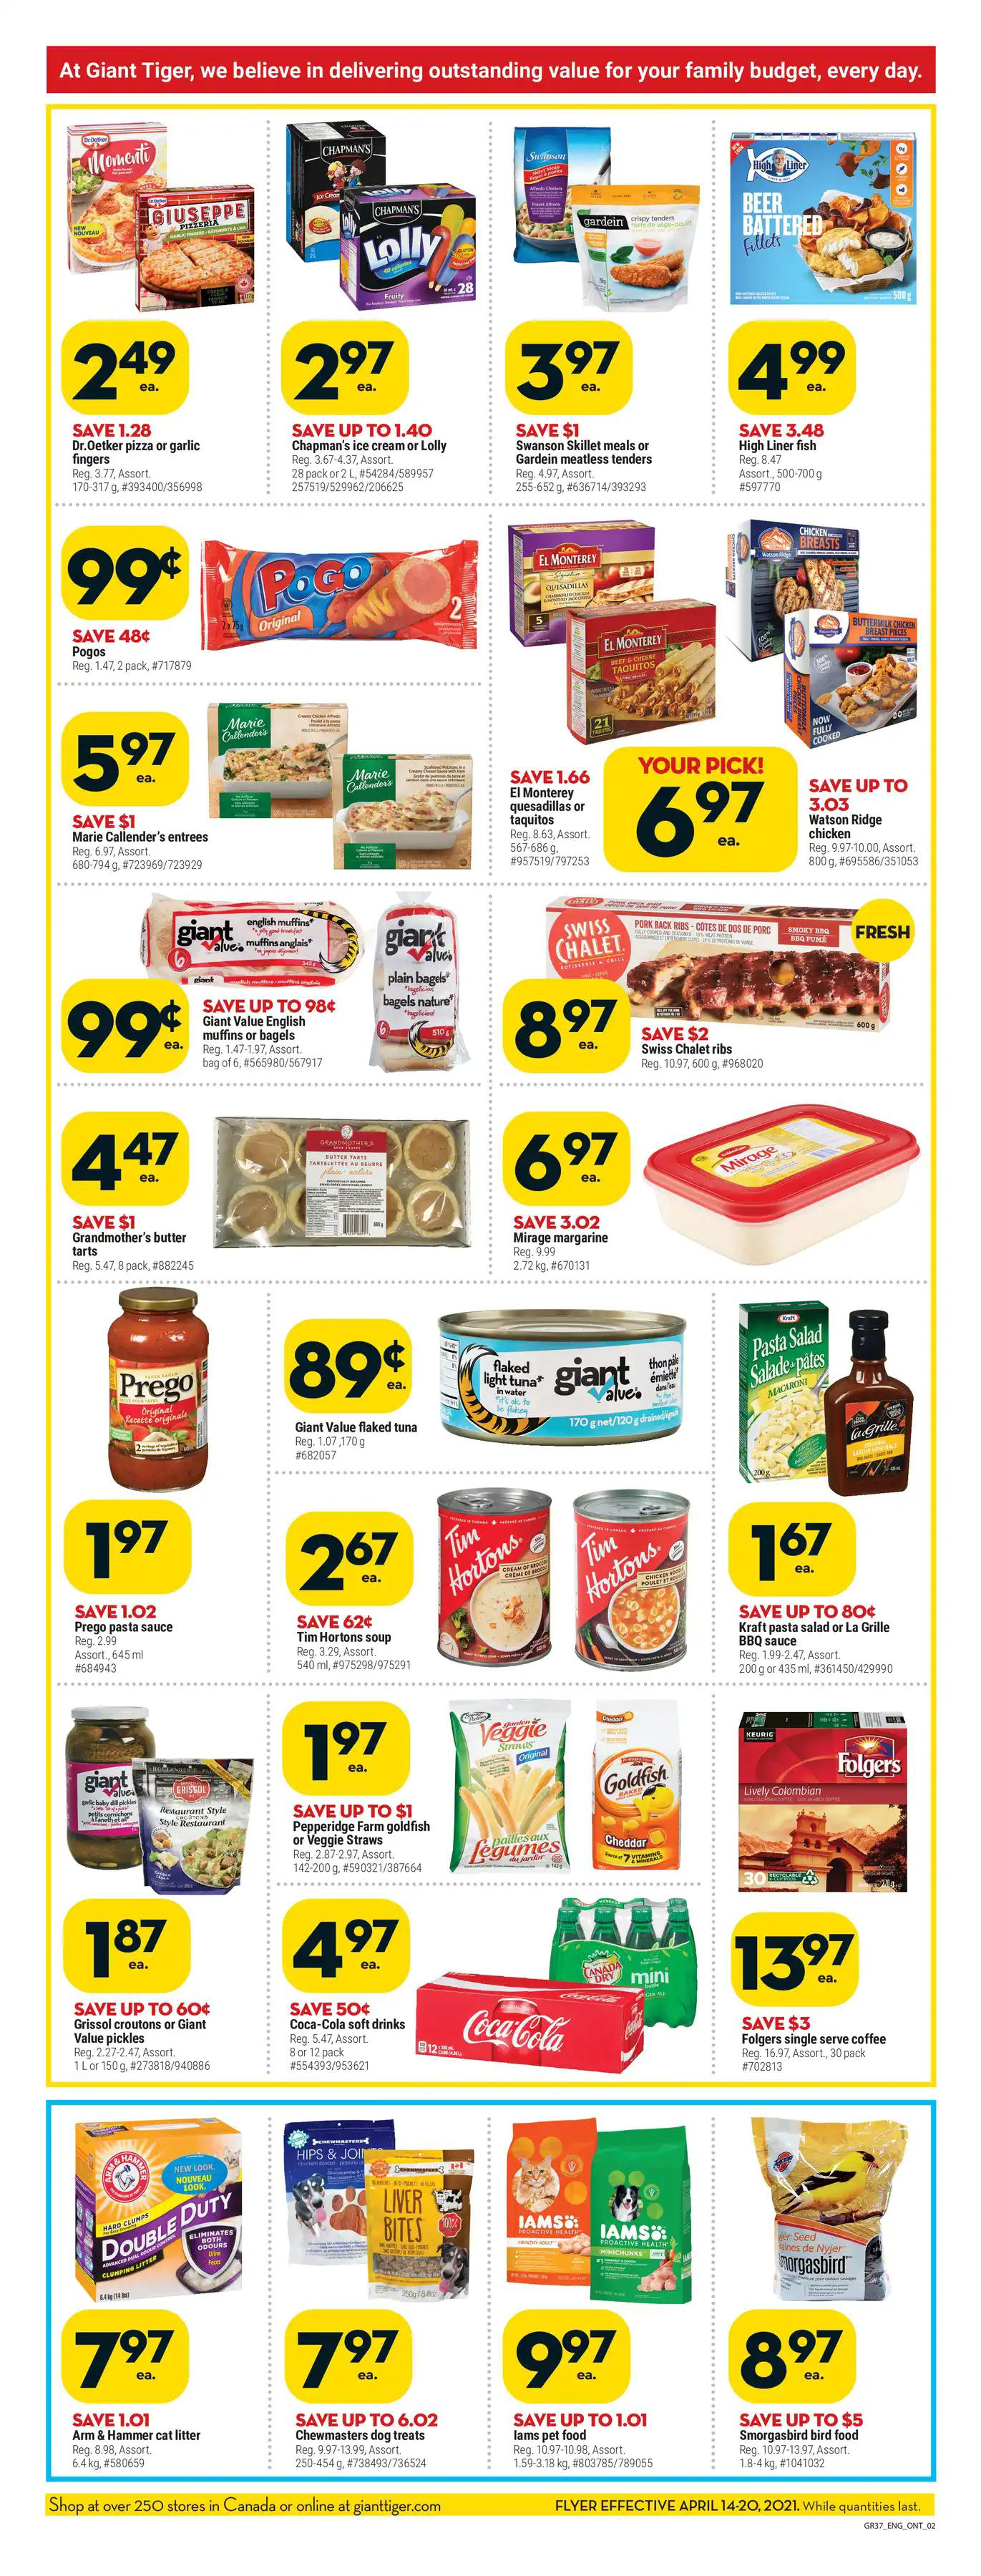 Giant Tiger - Weekly Flyer Specials - Page 3